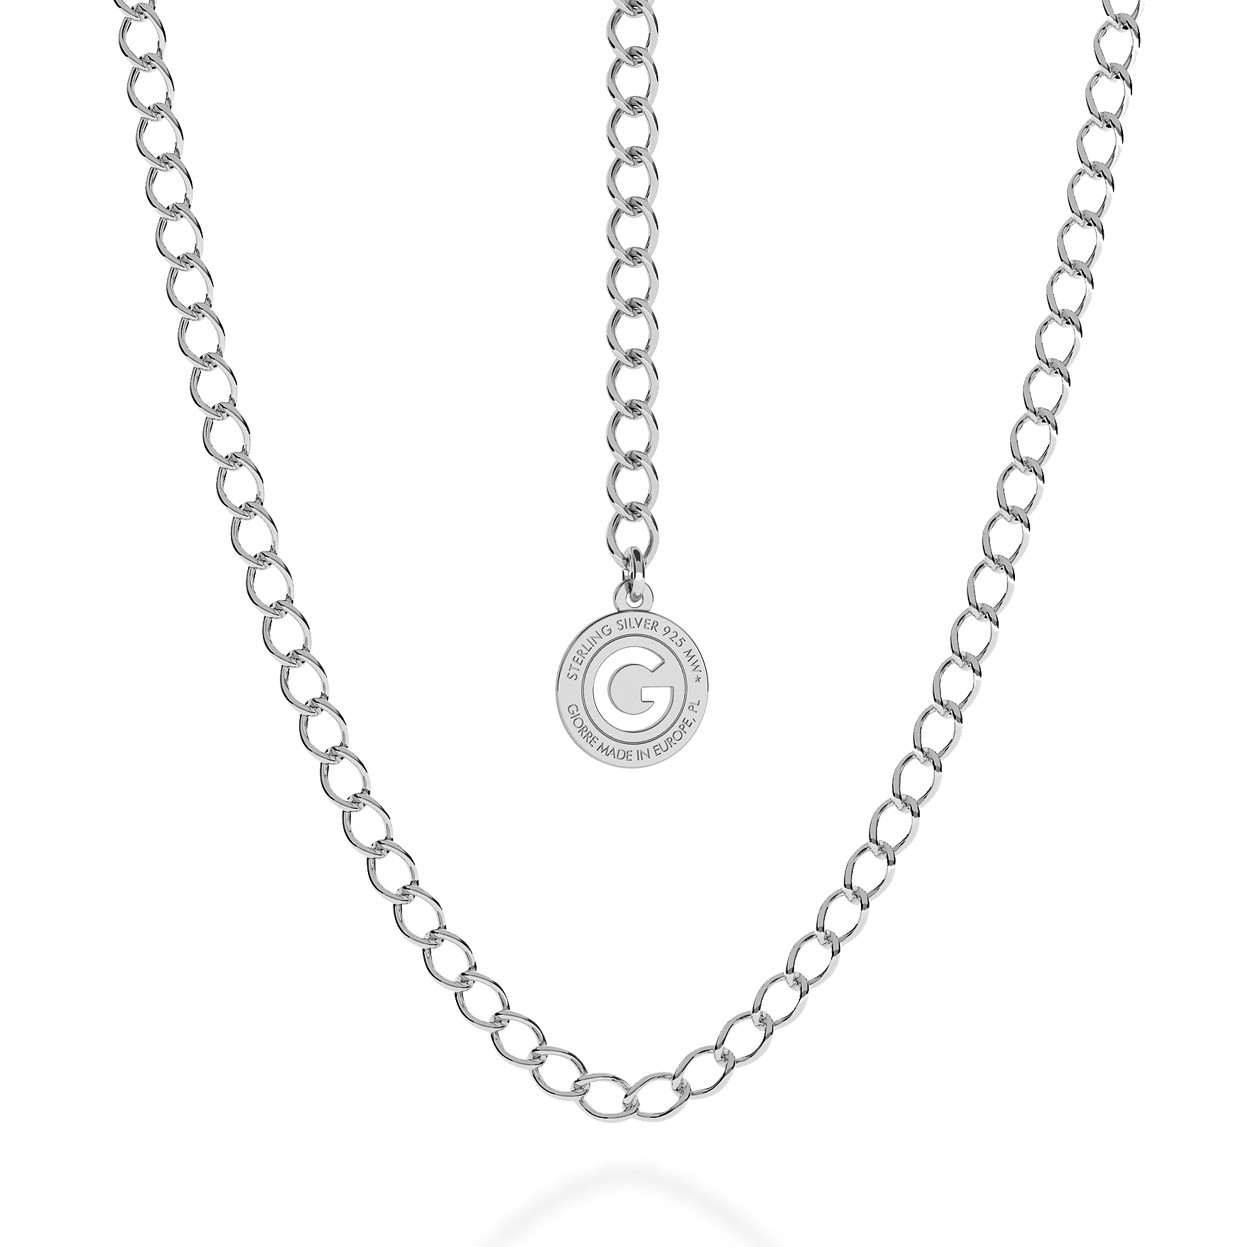 SILVER NECKLACE ROMBO 55 CM, RHODIUM PLATED